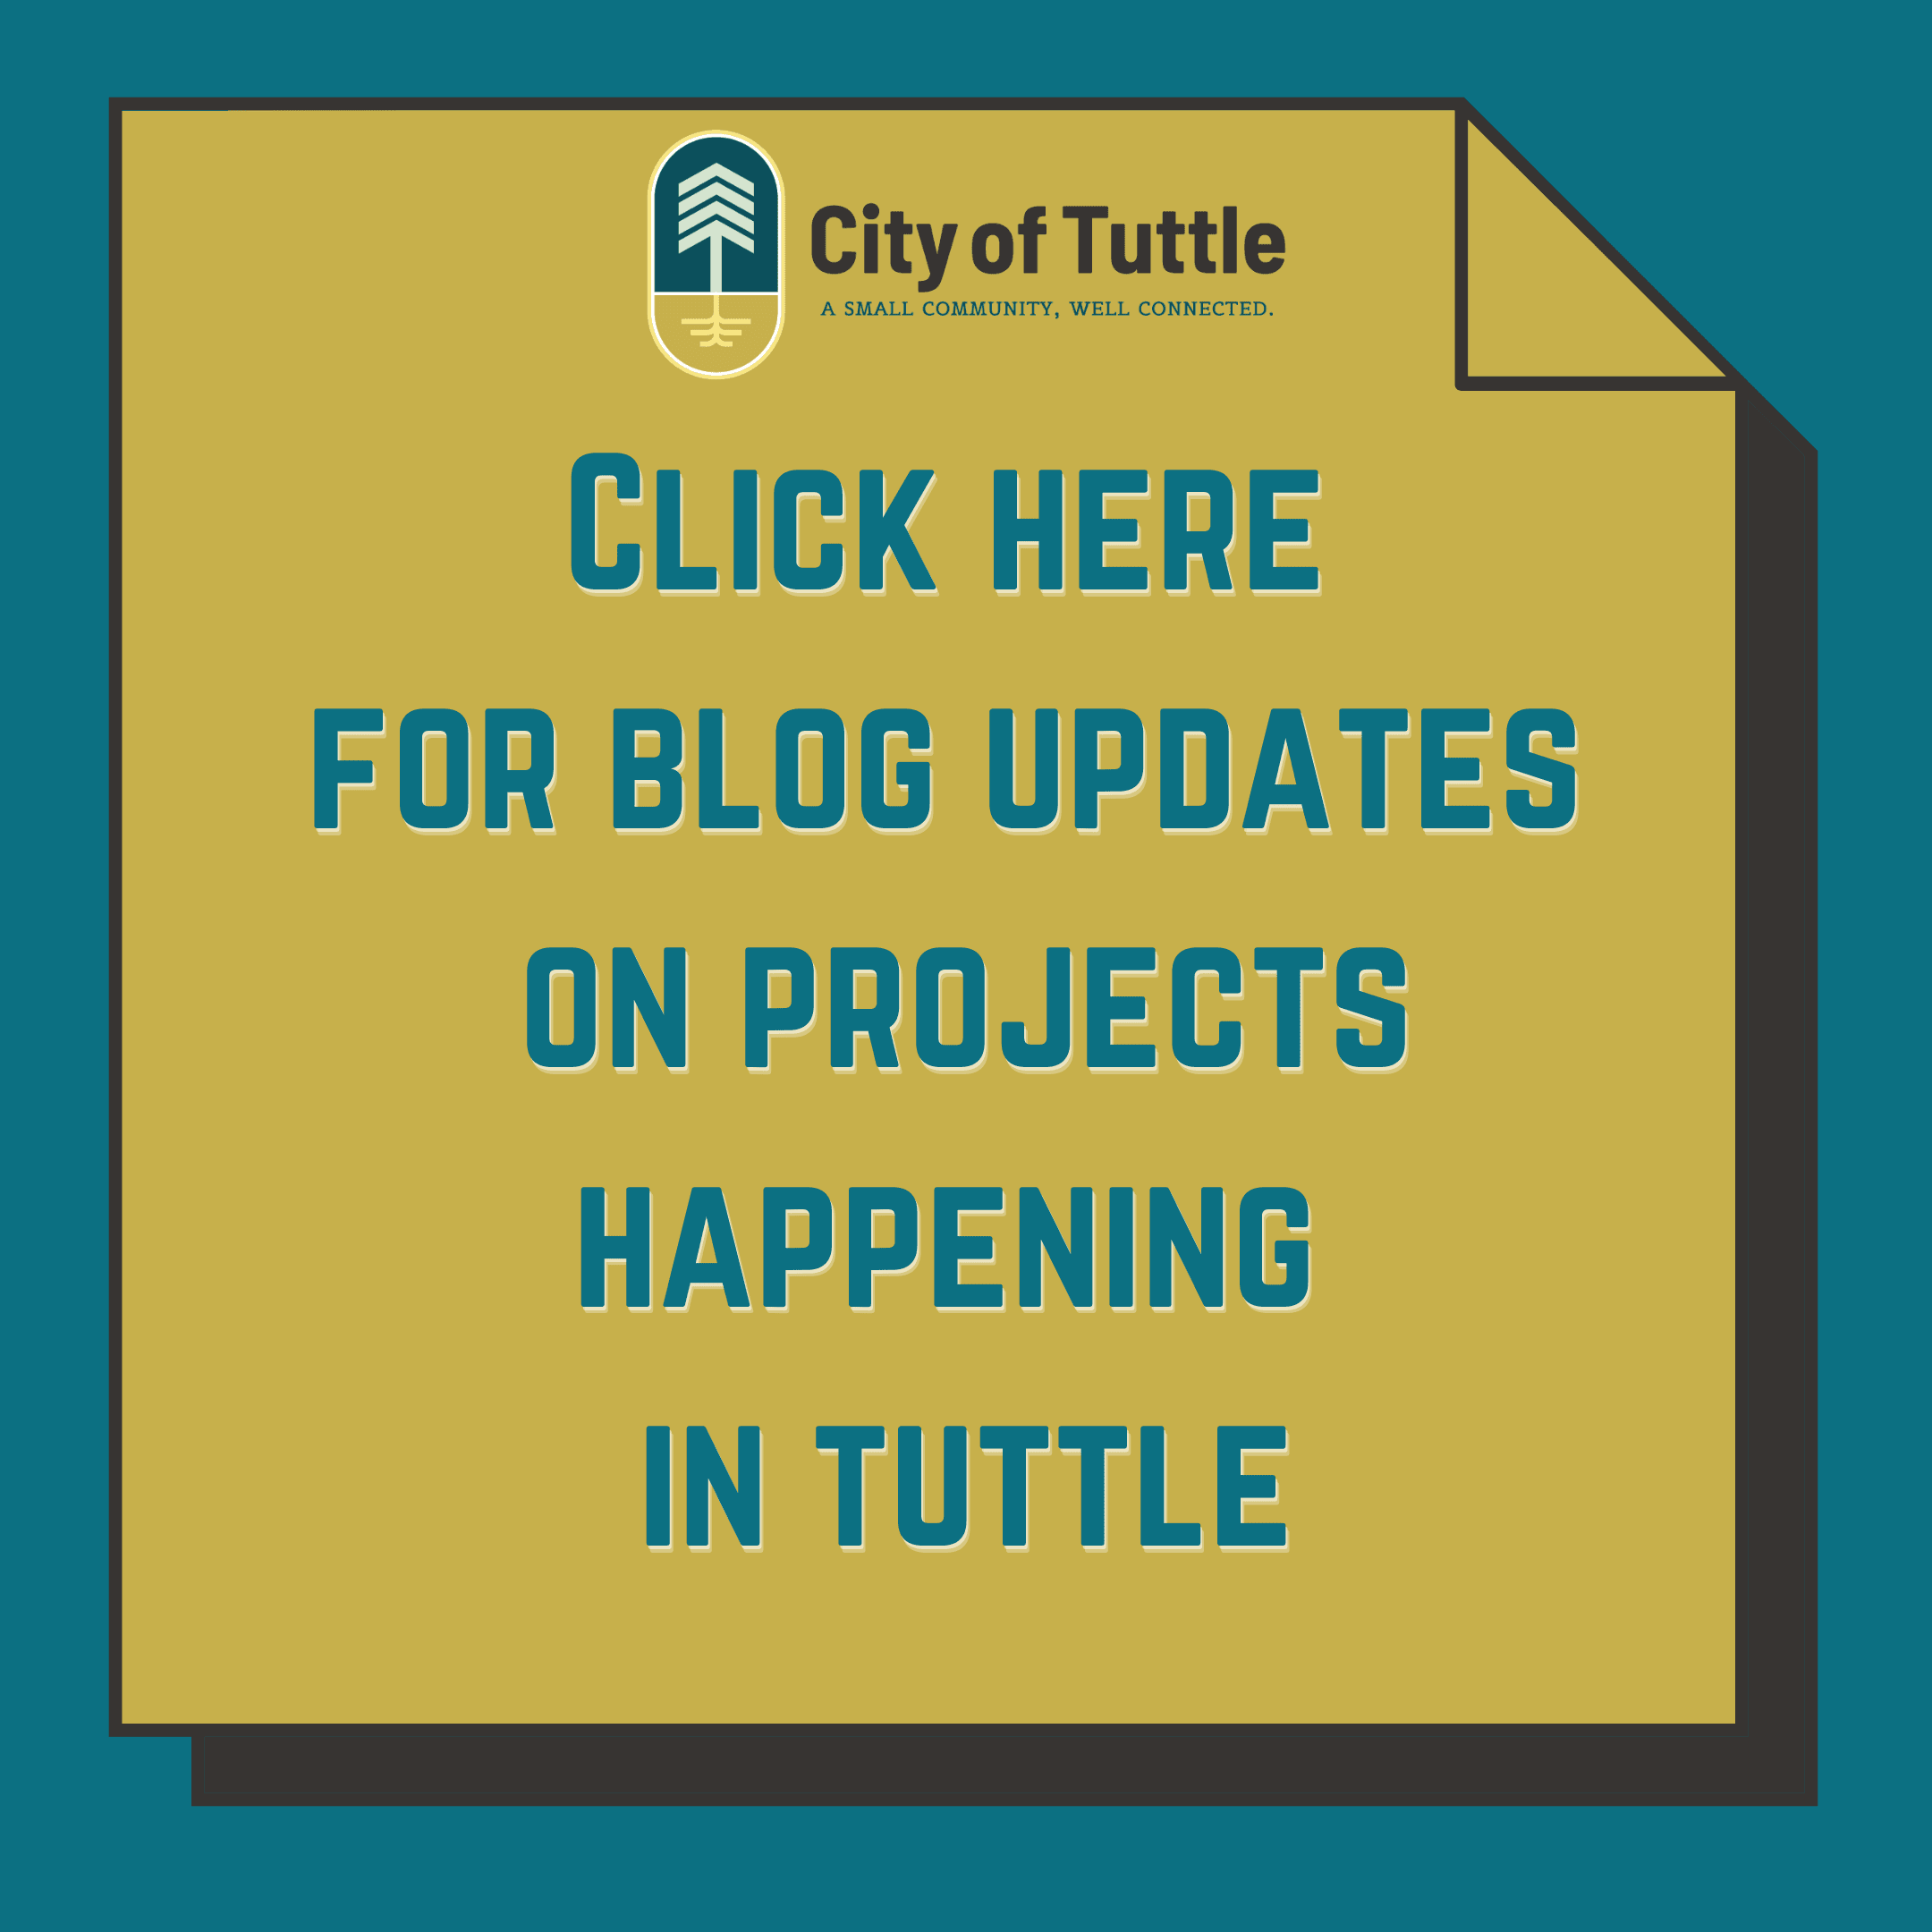 Click here for blog updates on projects happening in tuttle